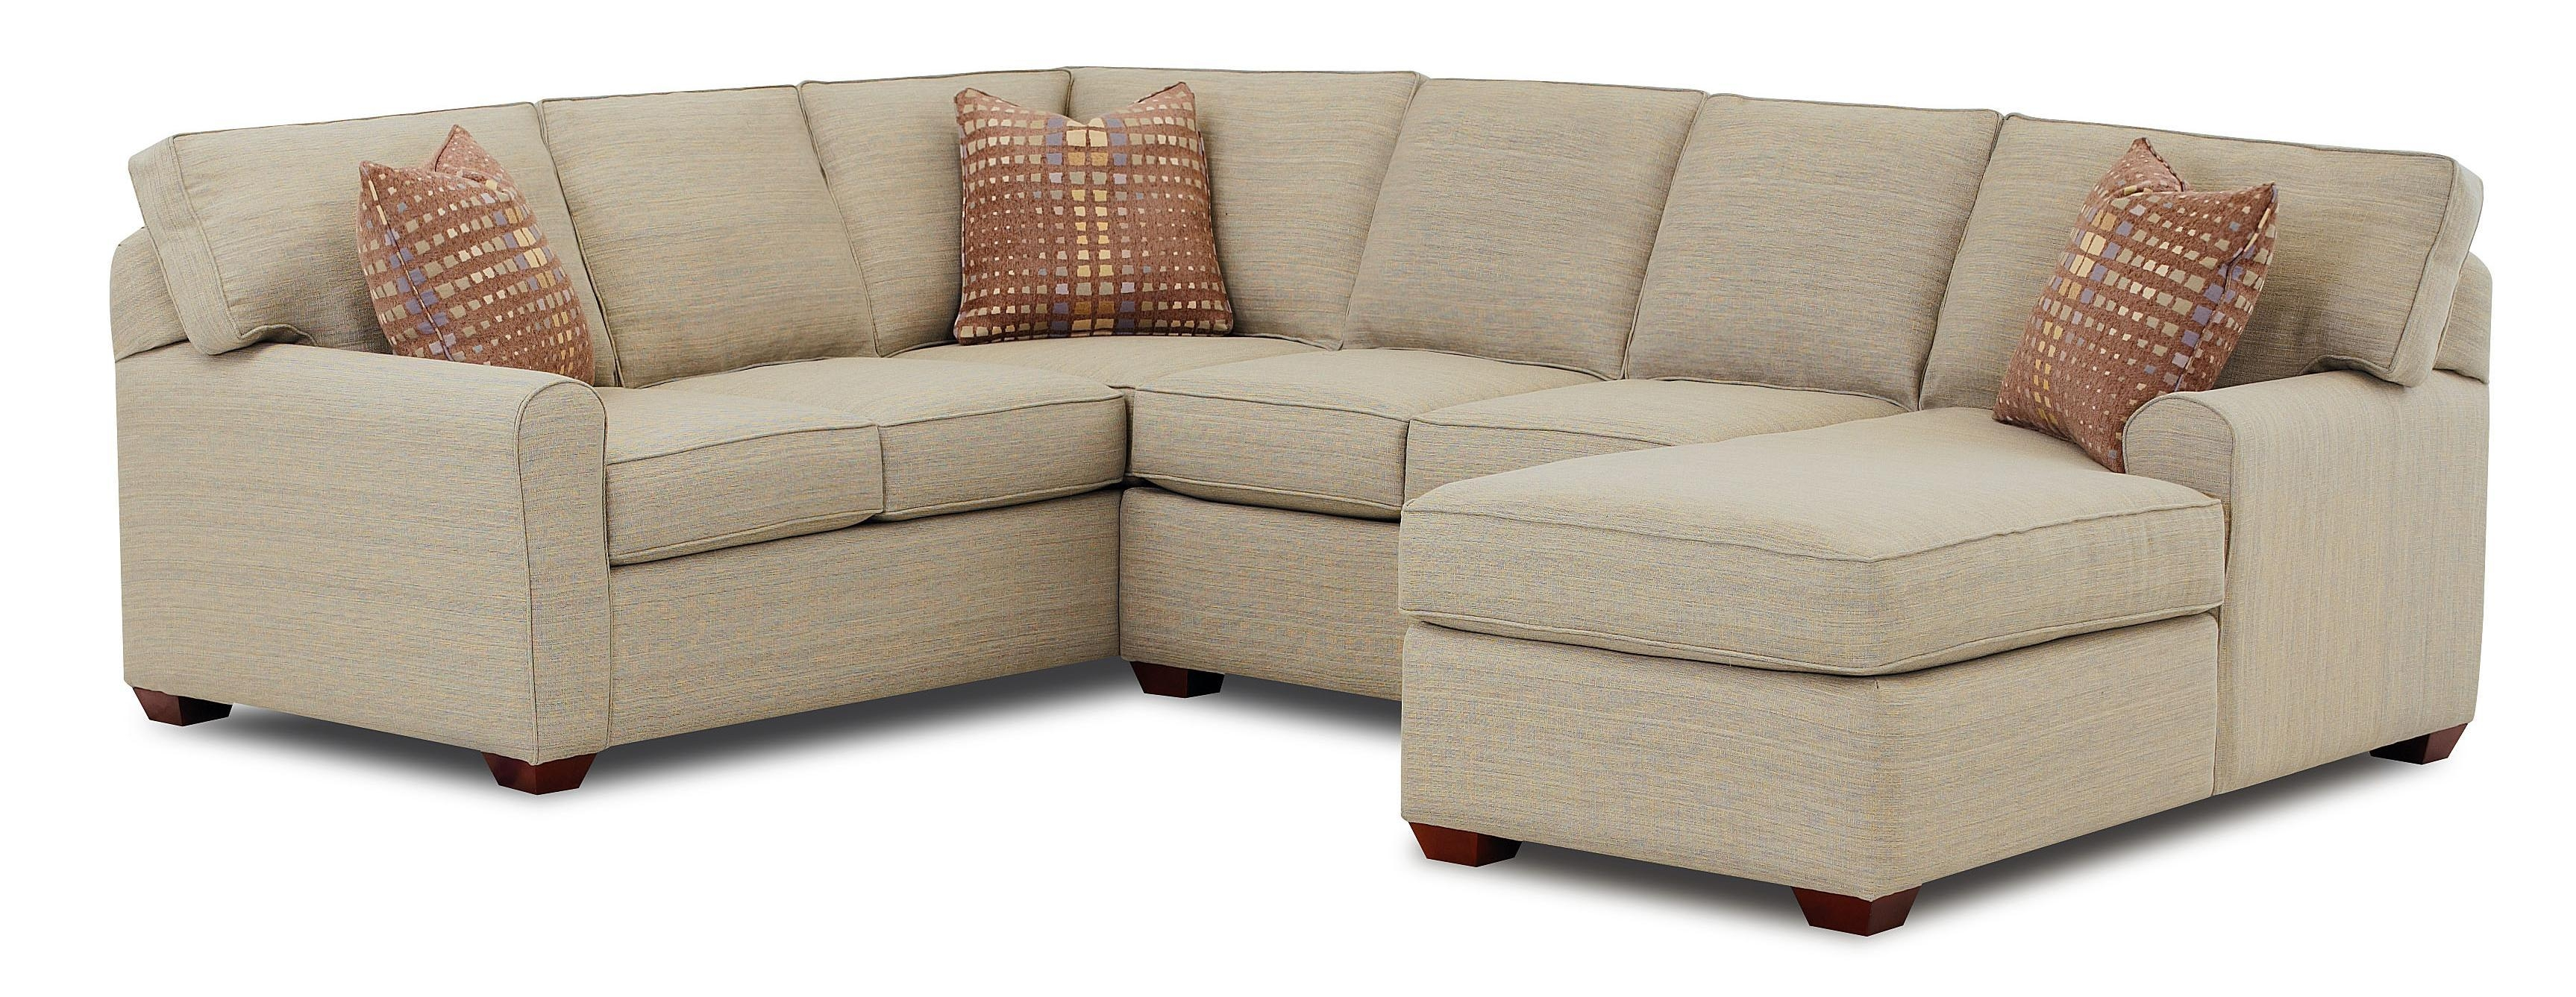 20 Best Ideas Pull Out Sectional  Sofa Ideas